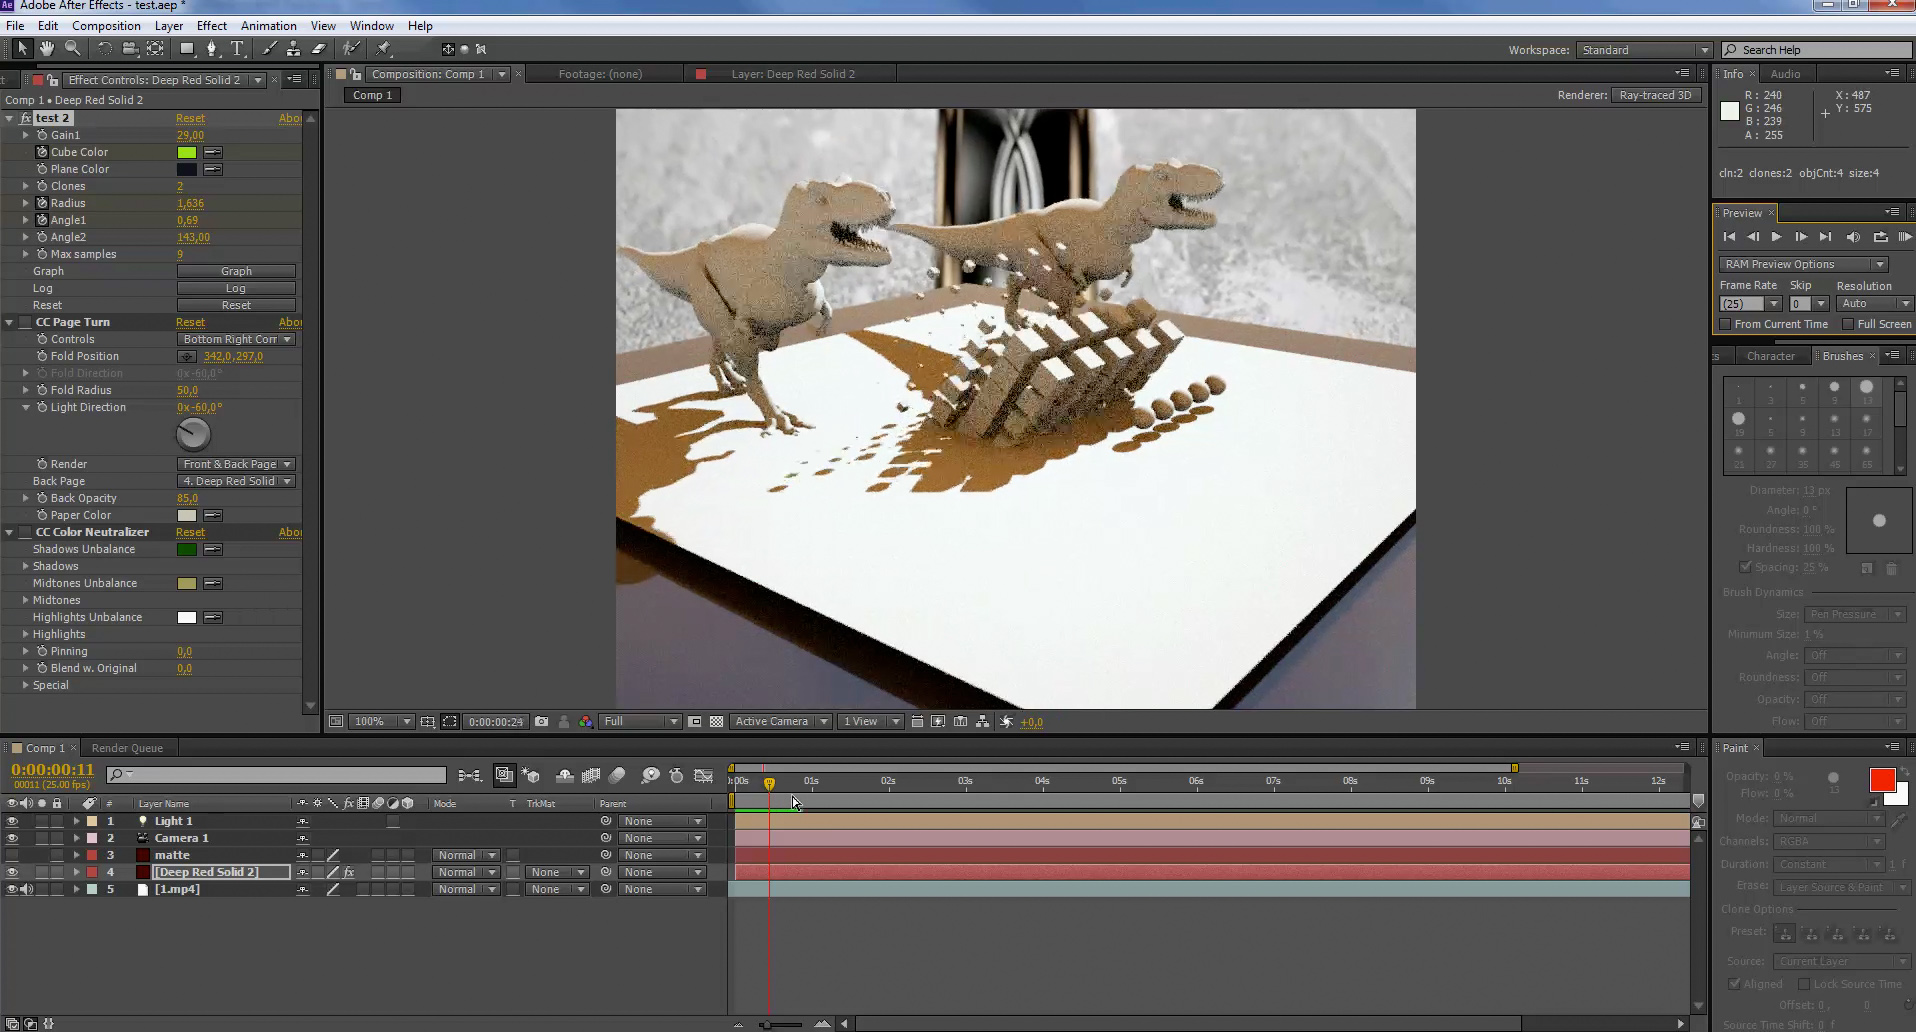 OTOY • OTOY brings OctaneRender™ to Adobe After Effects